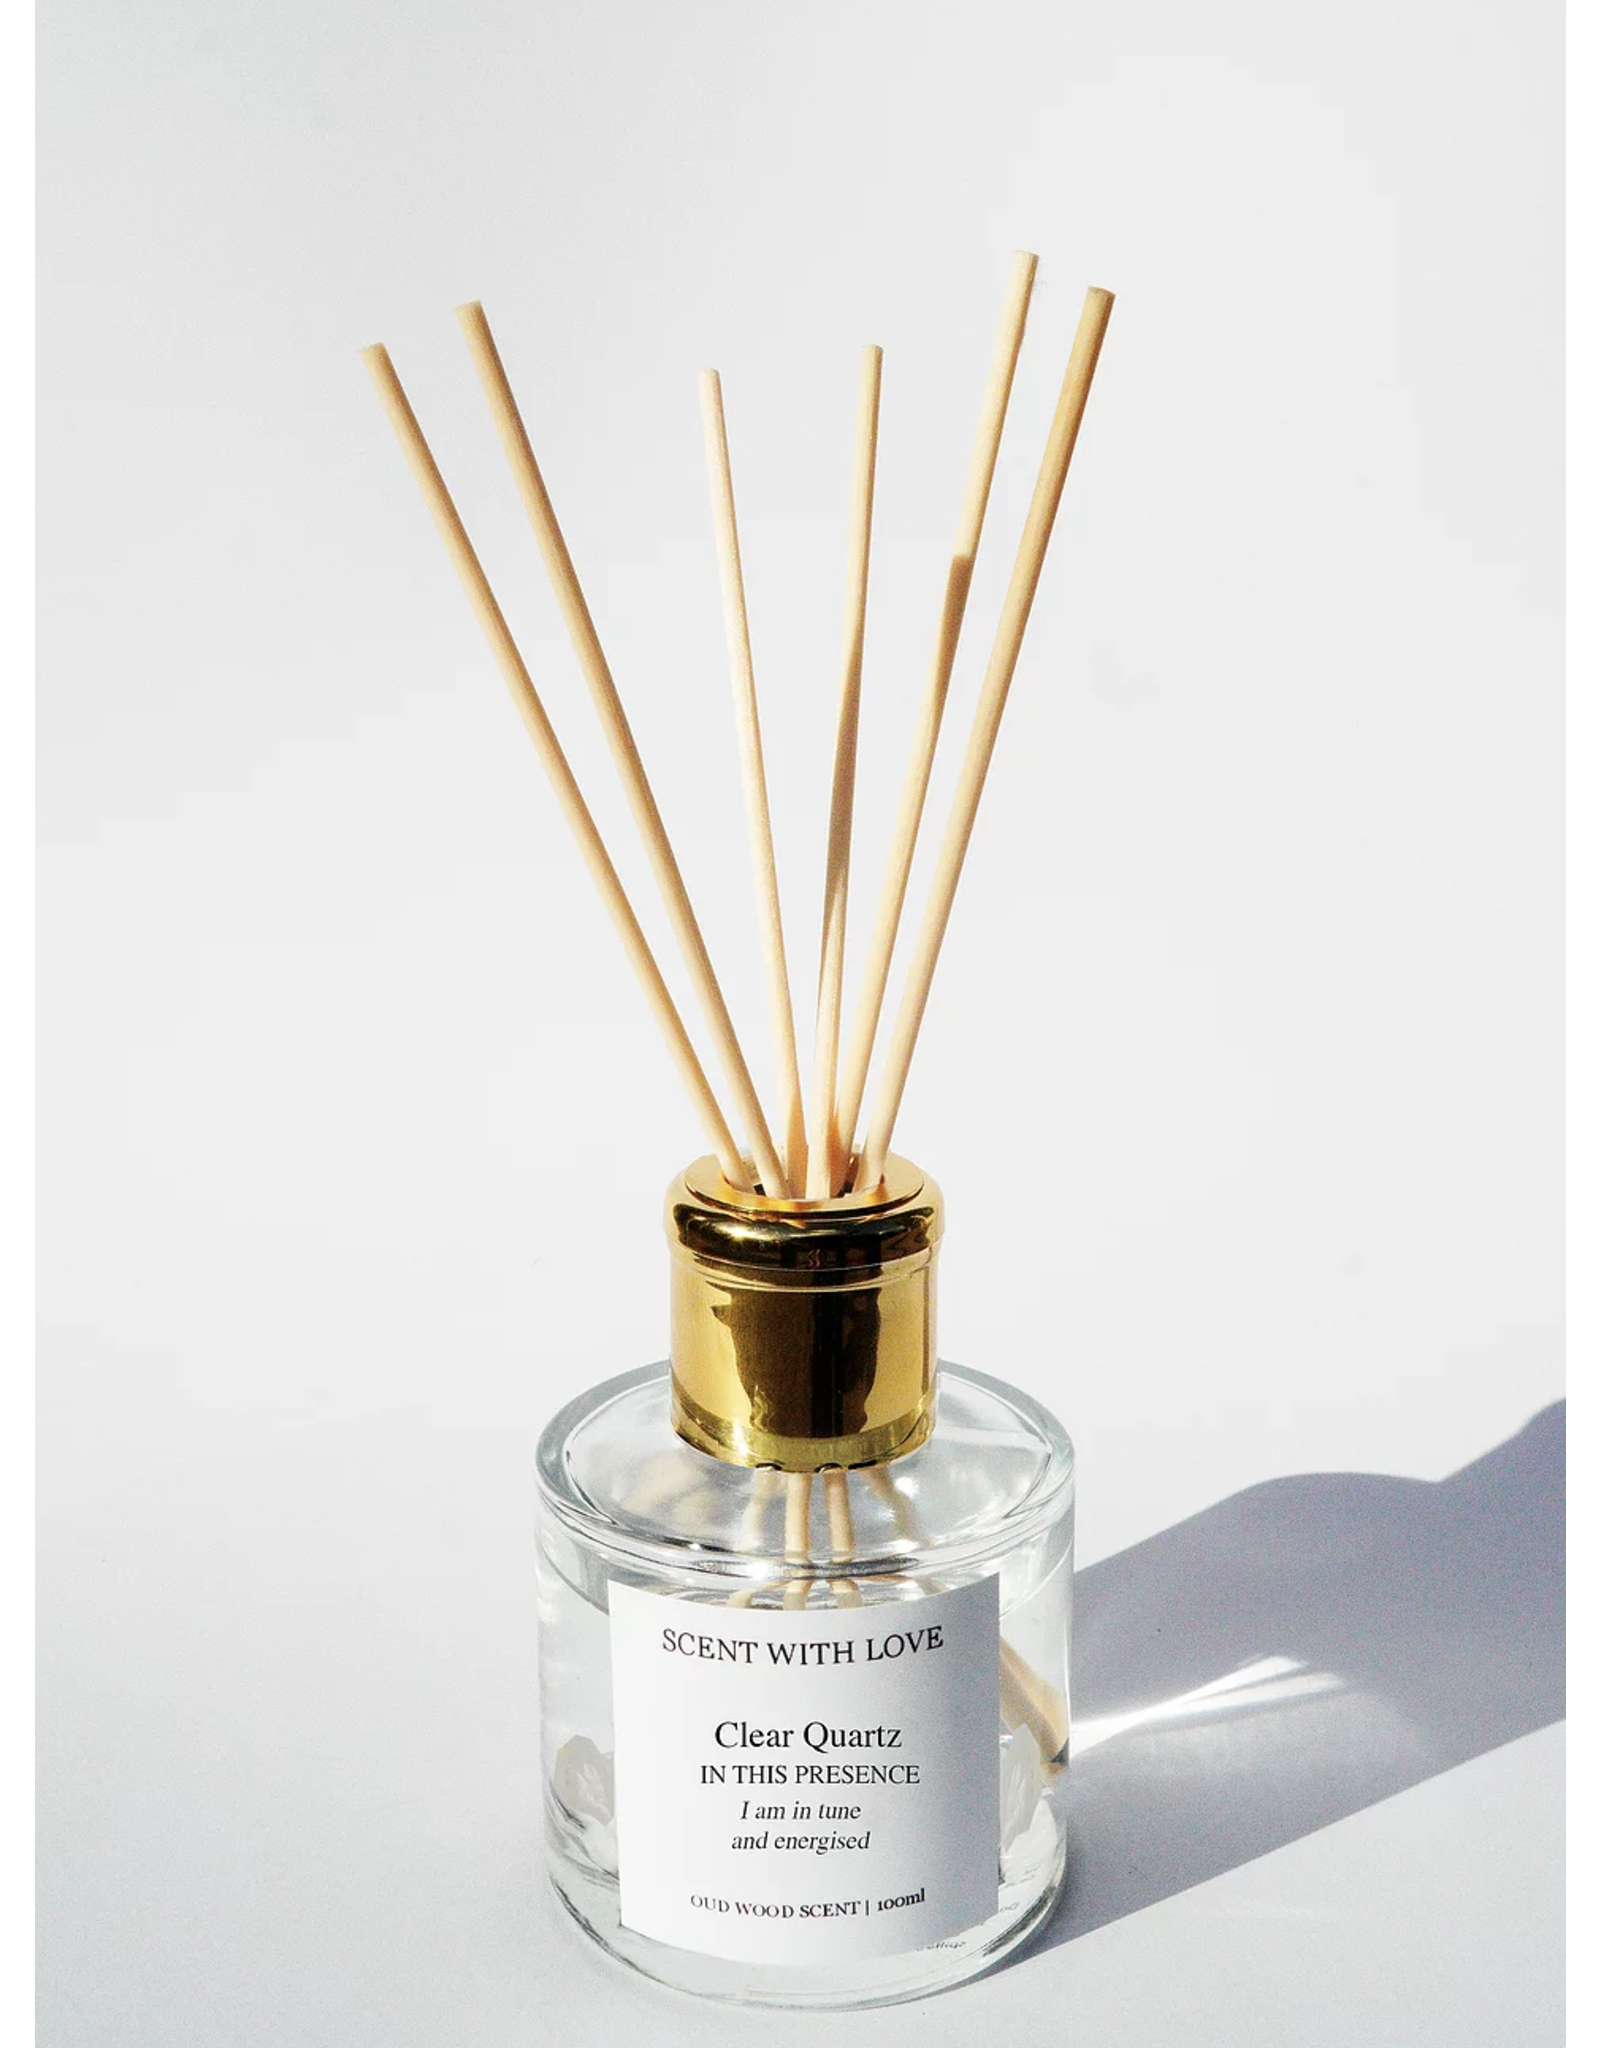 SCENT WITH LOVE Diffuser Clear Quartz | In tune & Energised